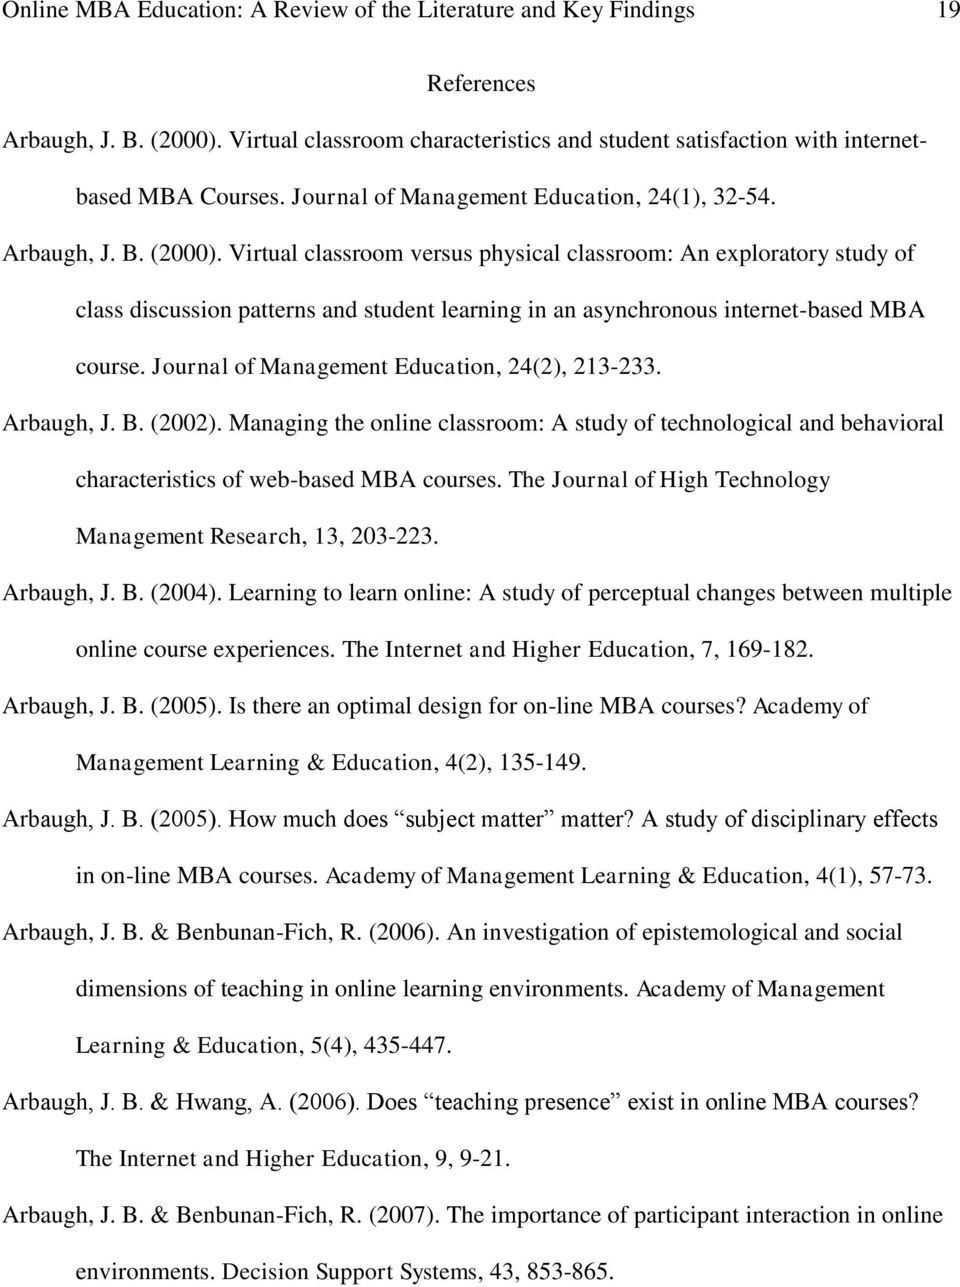 Virtual classroom versus physical classroom: An exploratory study of class discussion patterns and student learning in an asynchronous internet-based MBA course.